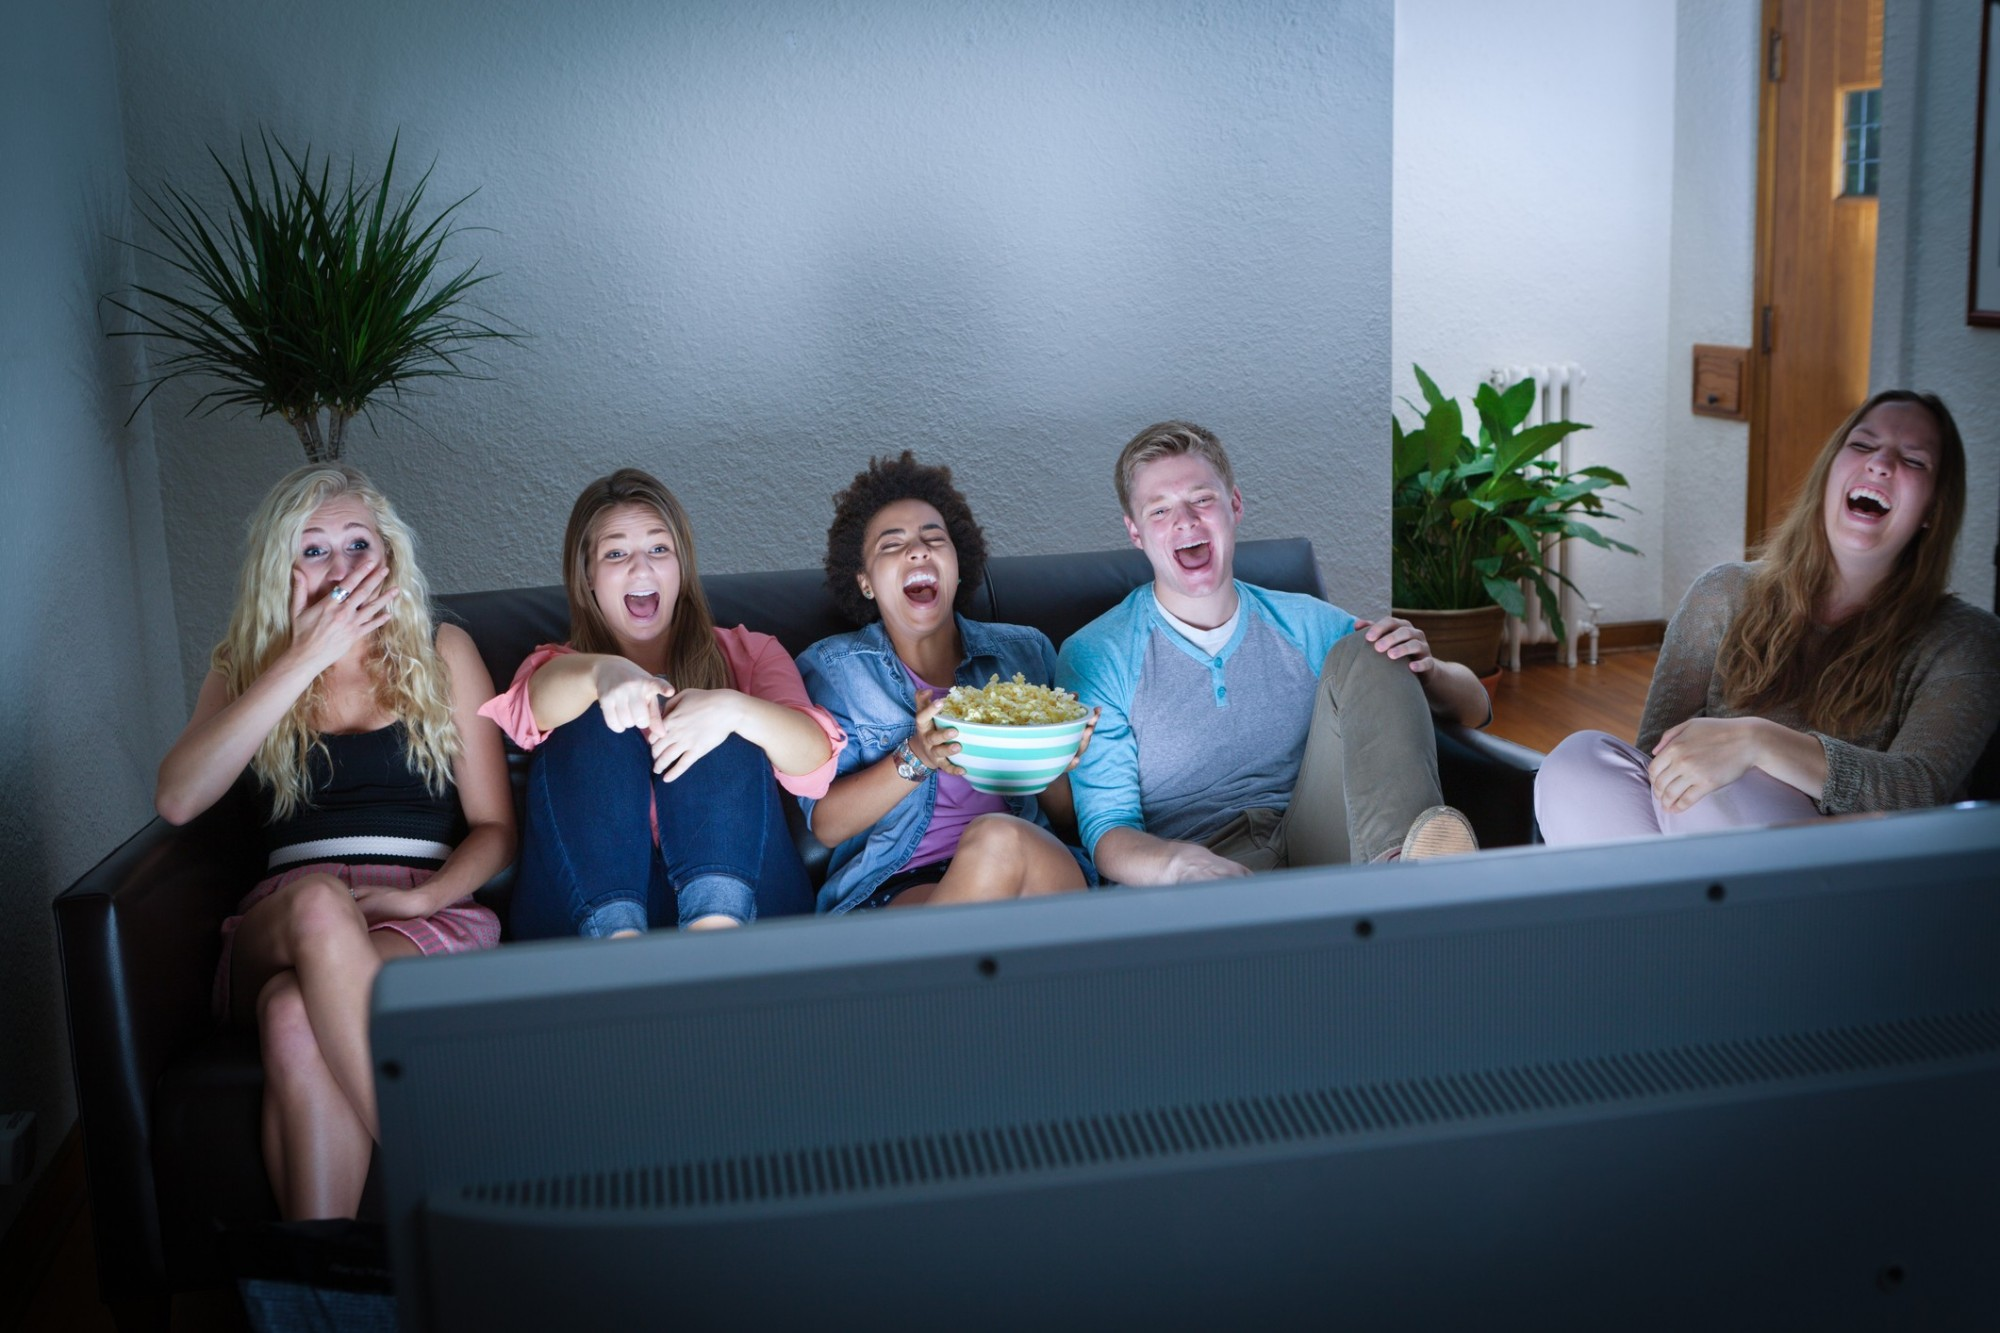 A group of friends sit on the sofa in a low-lit room, eating popcorn and gaping open-mouthed watching a film